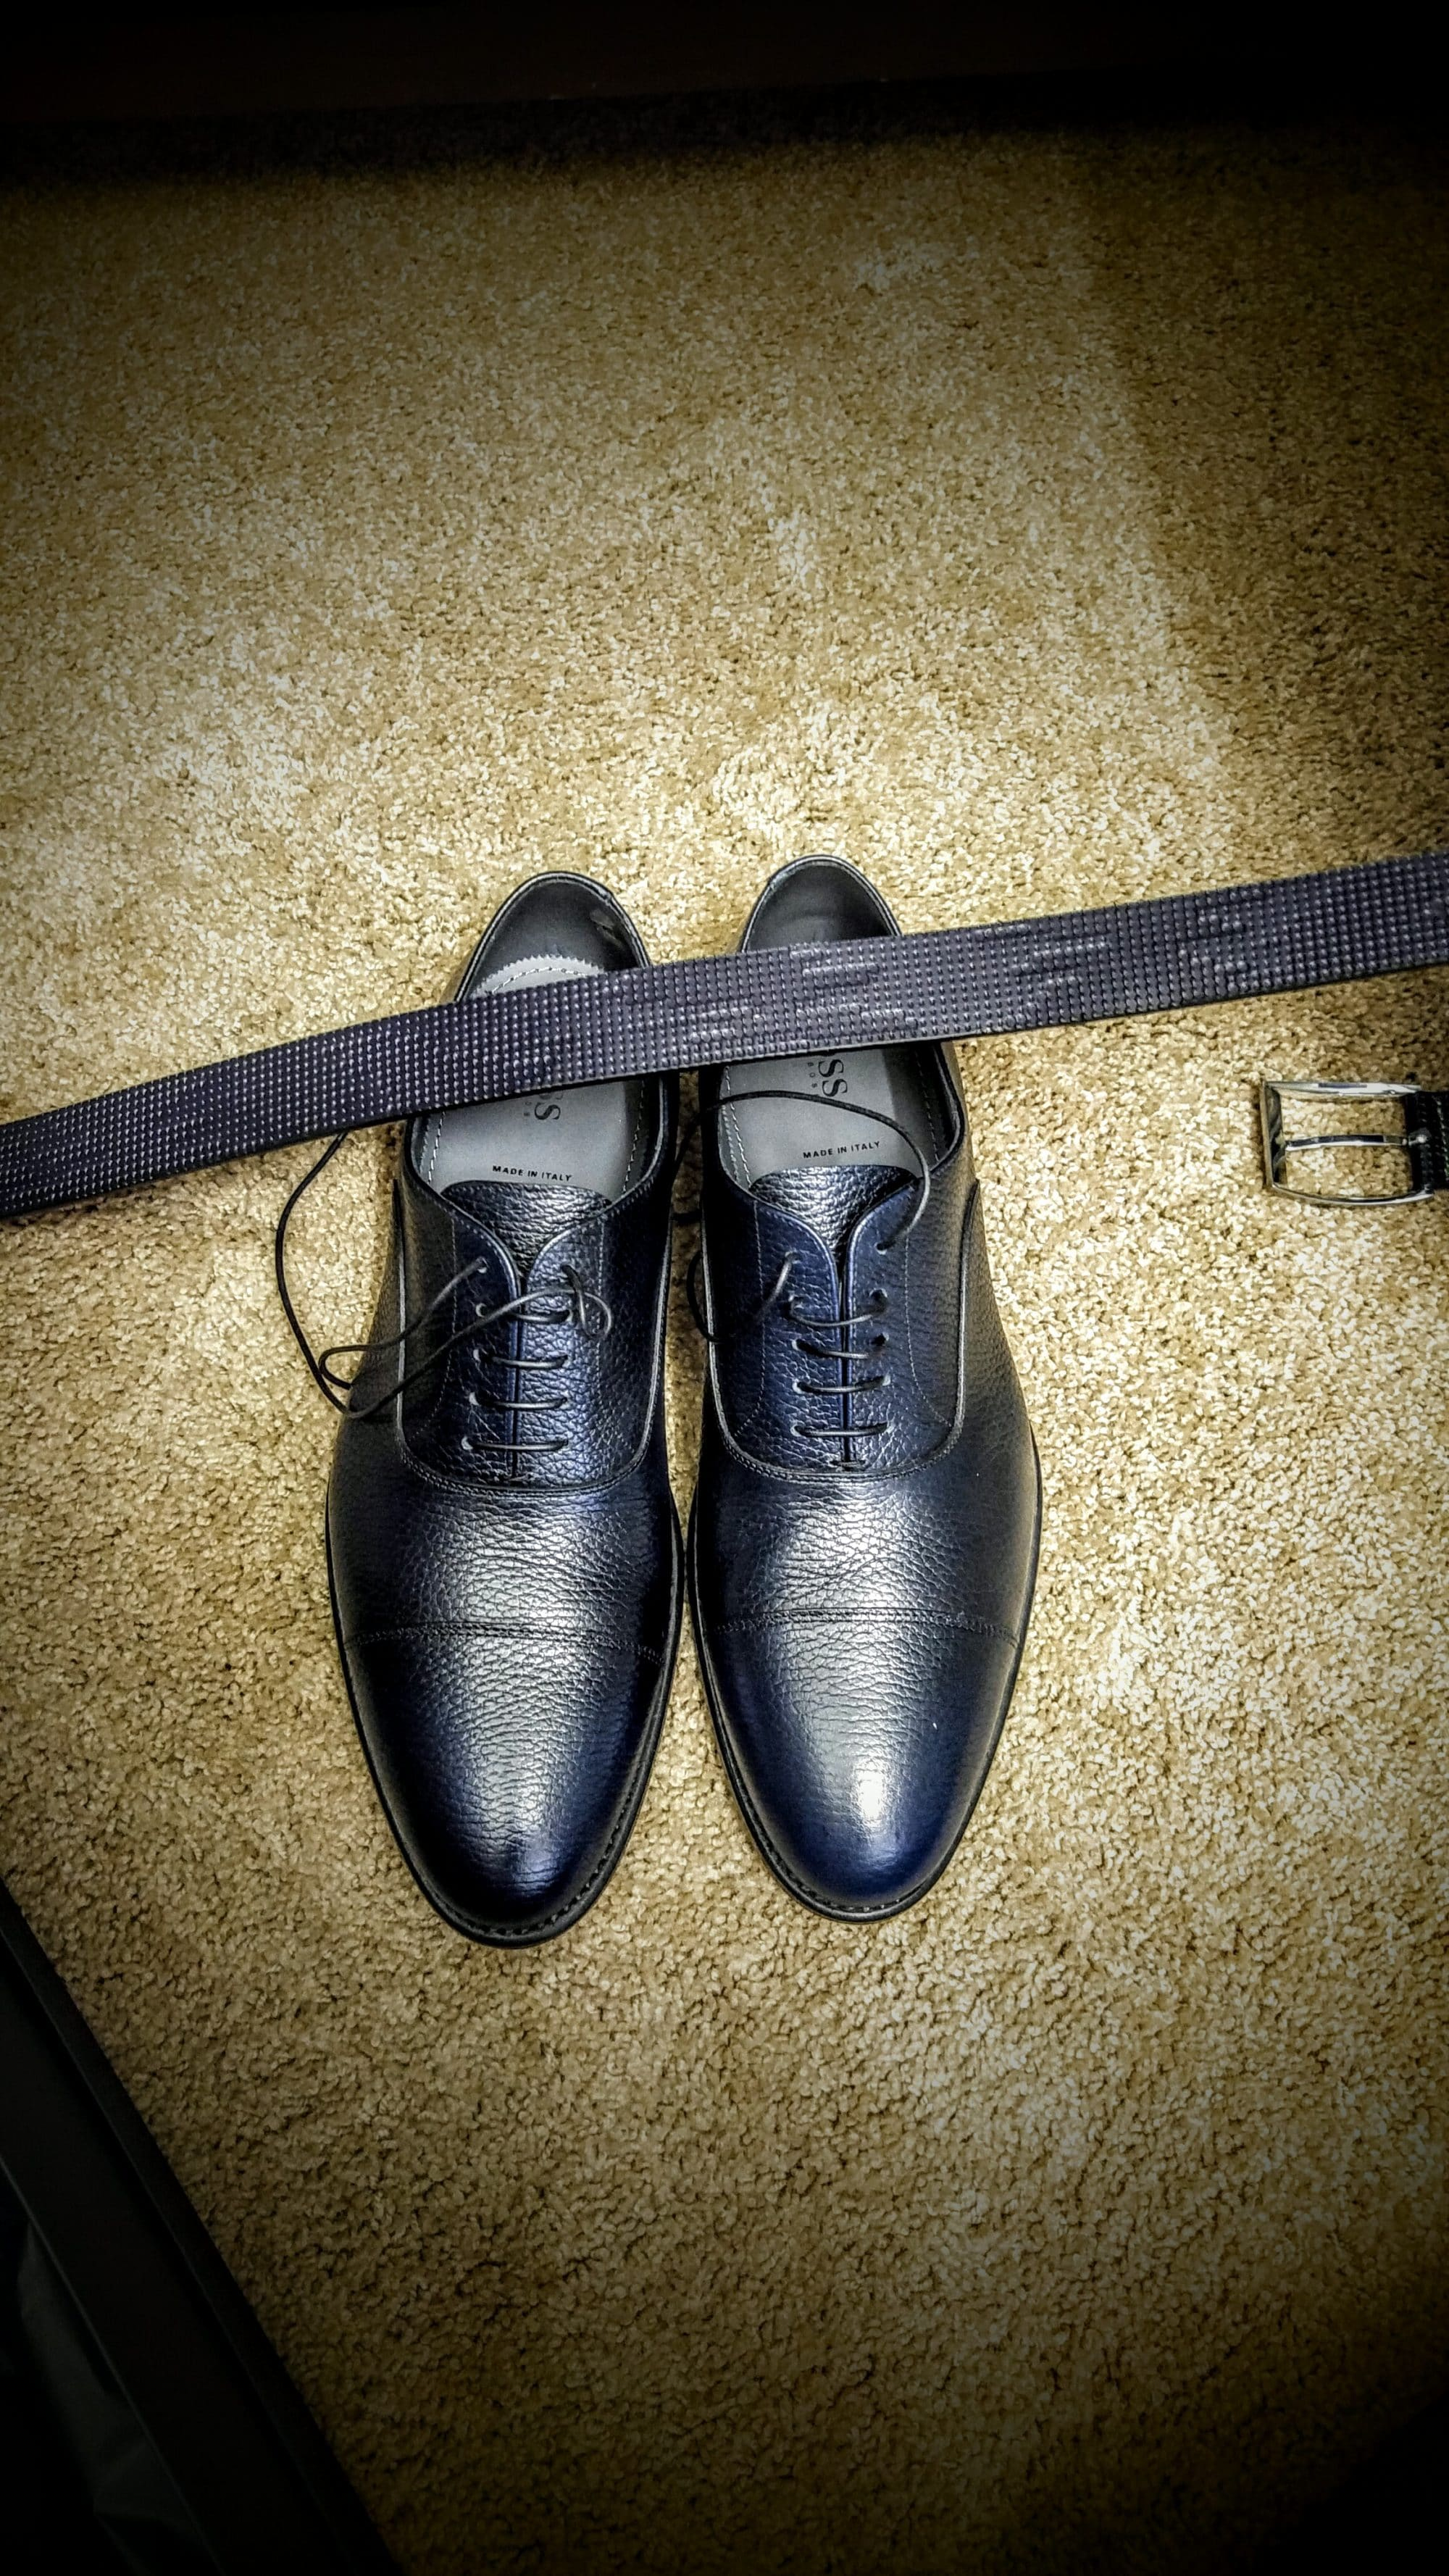 interview attire for men what to wear and how to wear it to impress what to wear to an interview men interview attire shoes match belt blue kris fannin intelivate